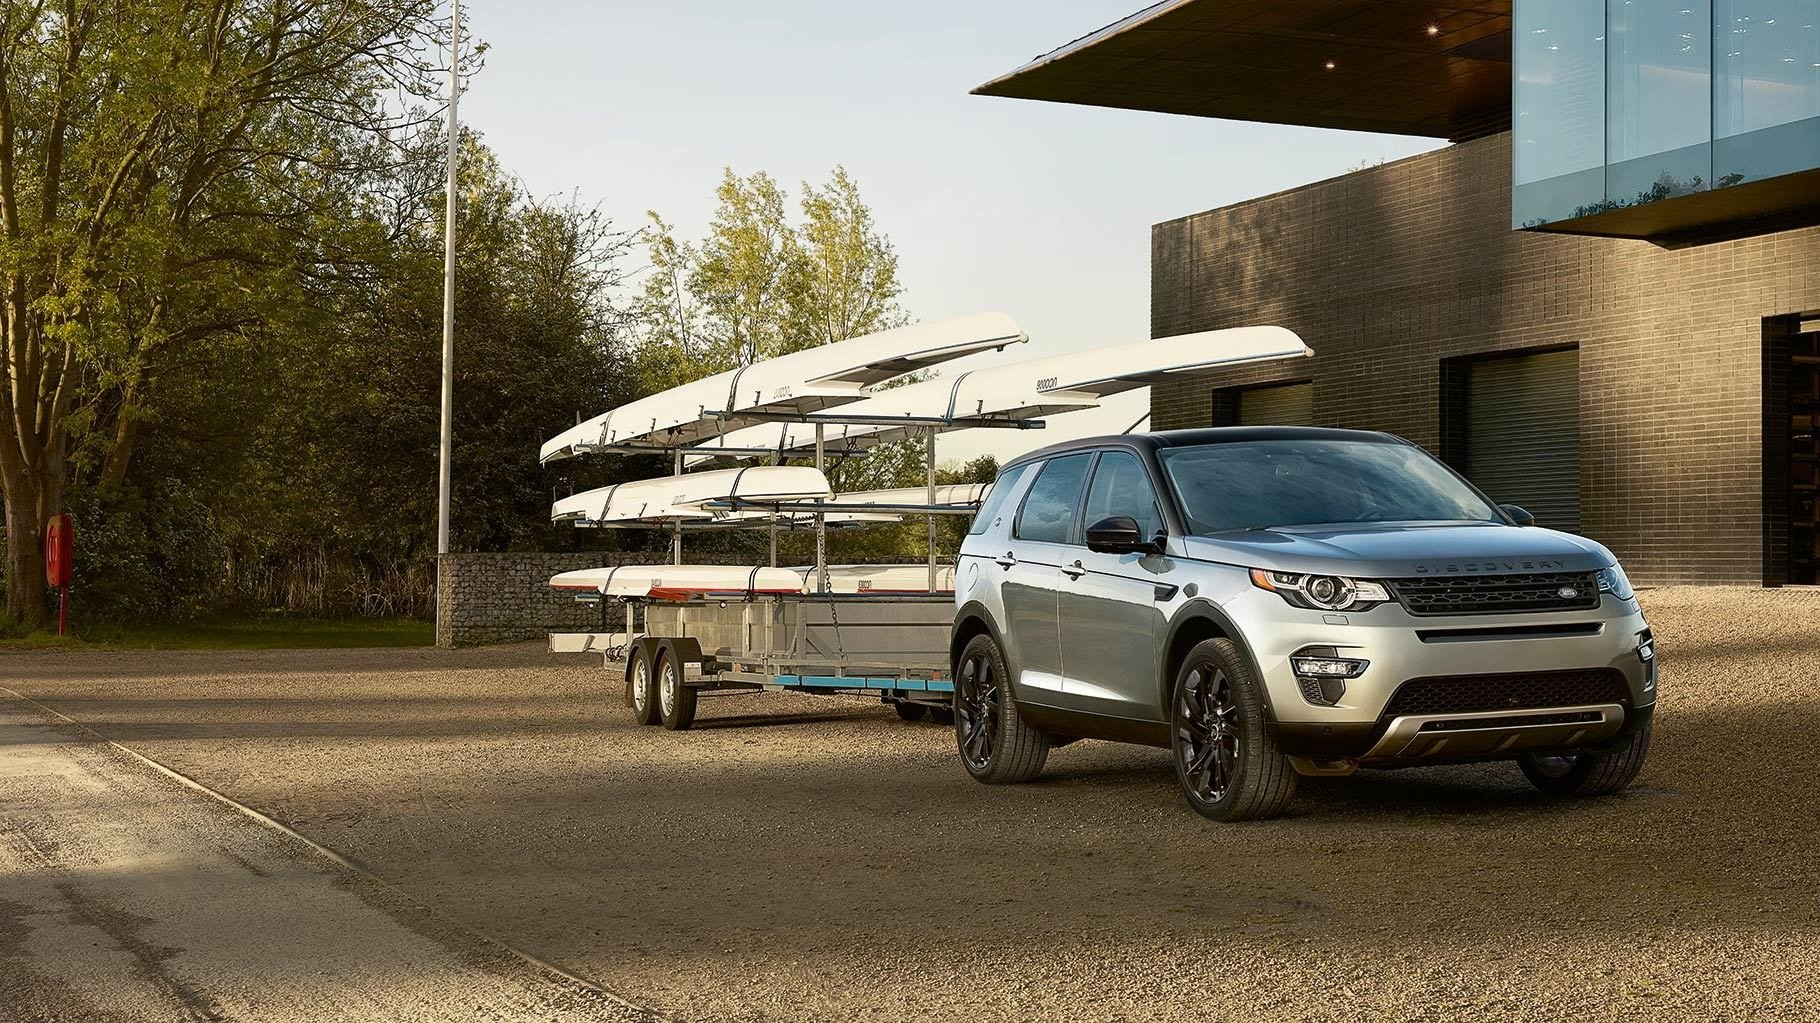 2017 Land Rover Discovery Sport towing a rack of canoes